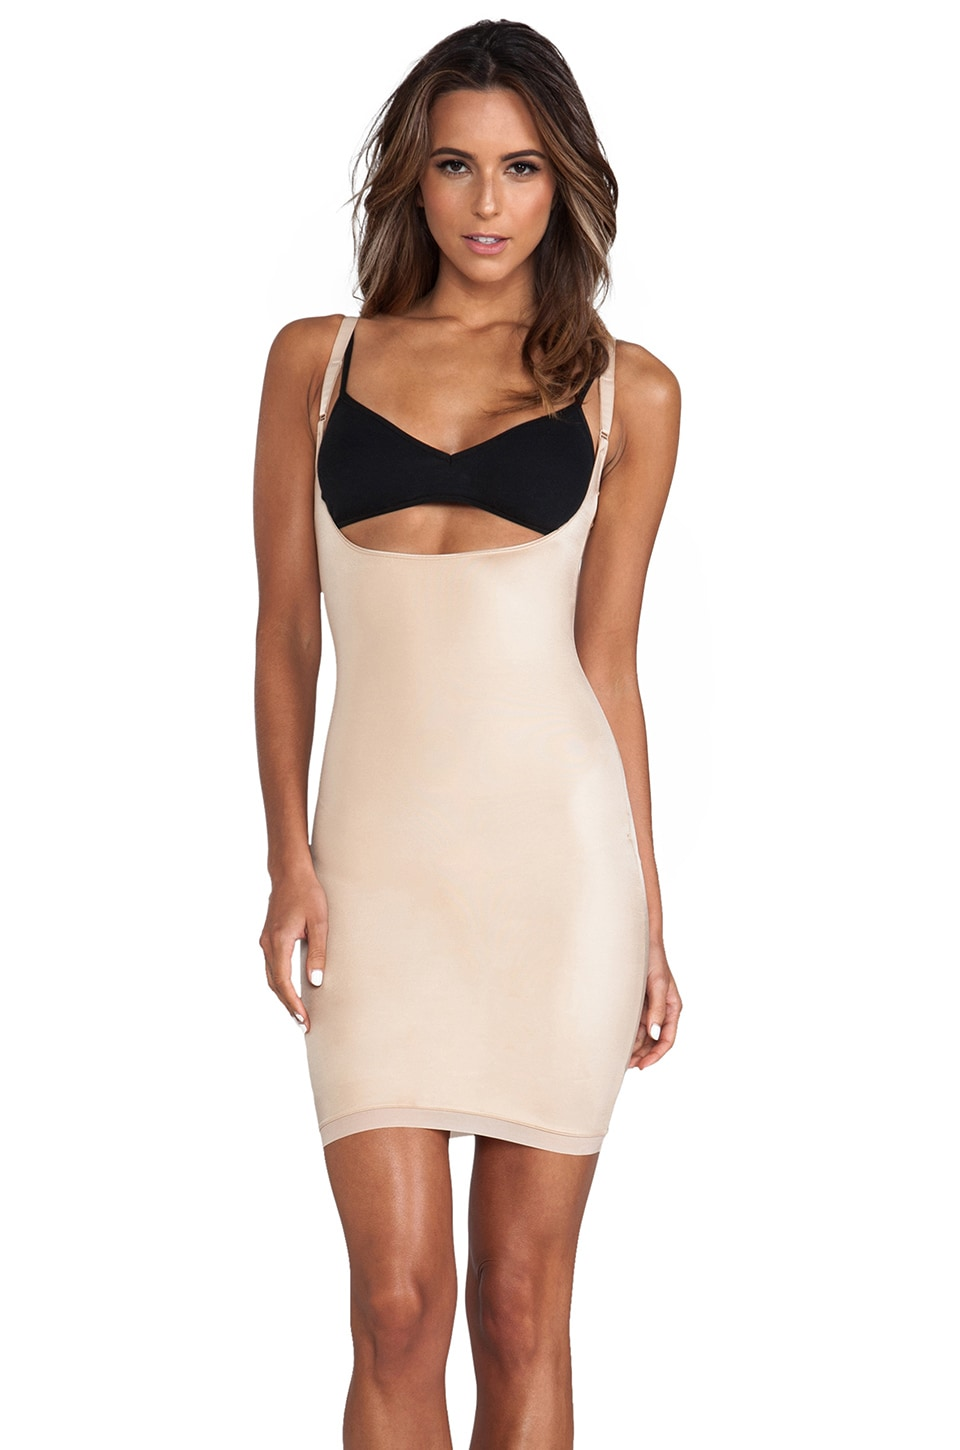 SPANX Simplicity Open-Bust Full Slip in Nude